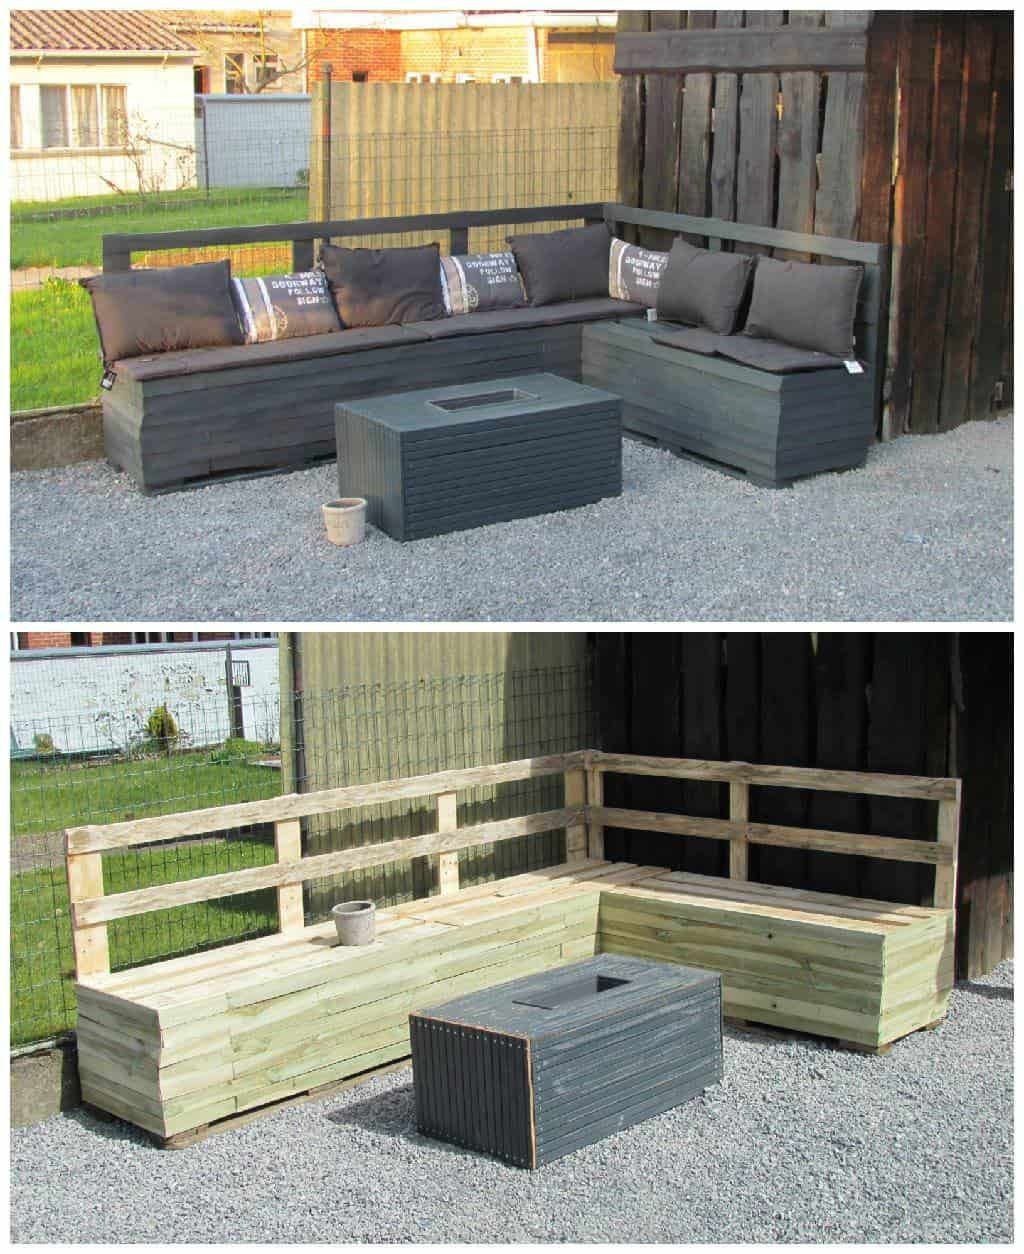 Pallet Garden Sofa | palets | Pinterest | Pallet, Pallets garden and ...